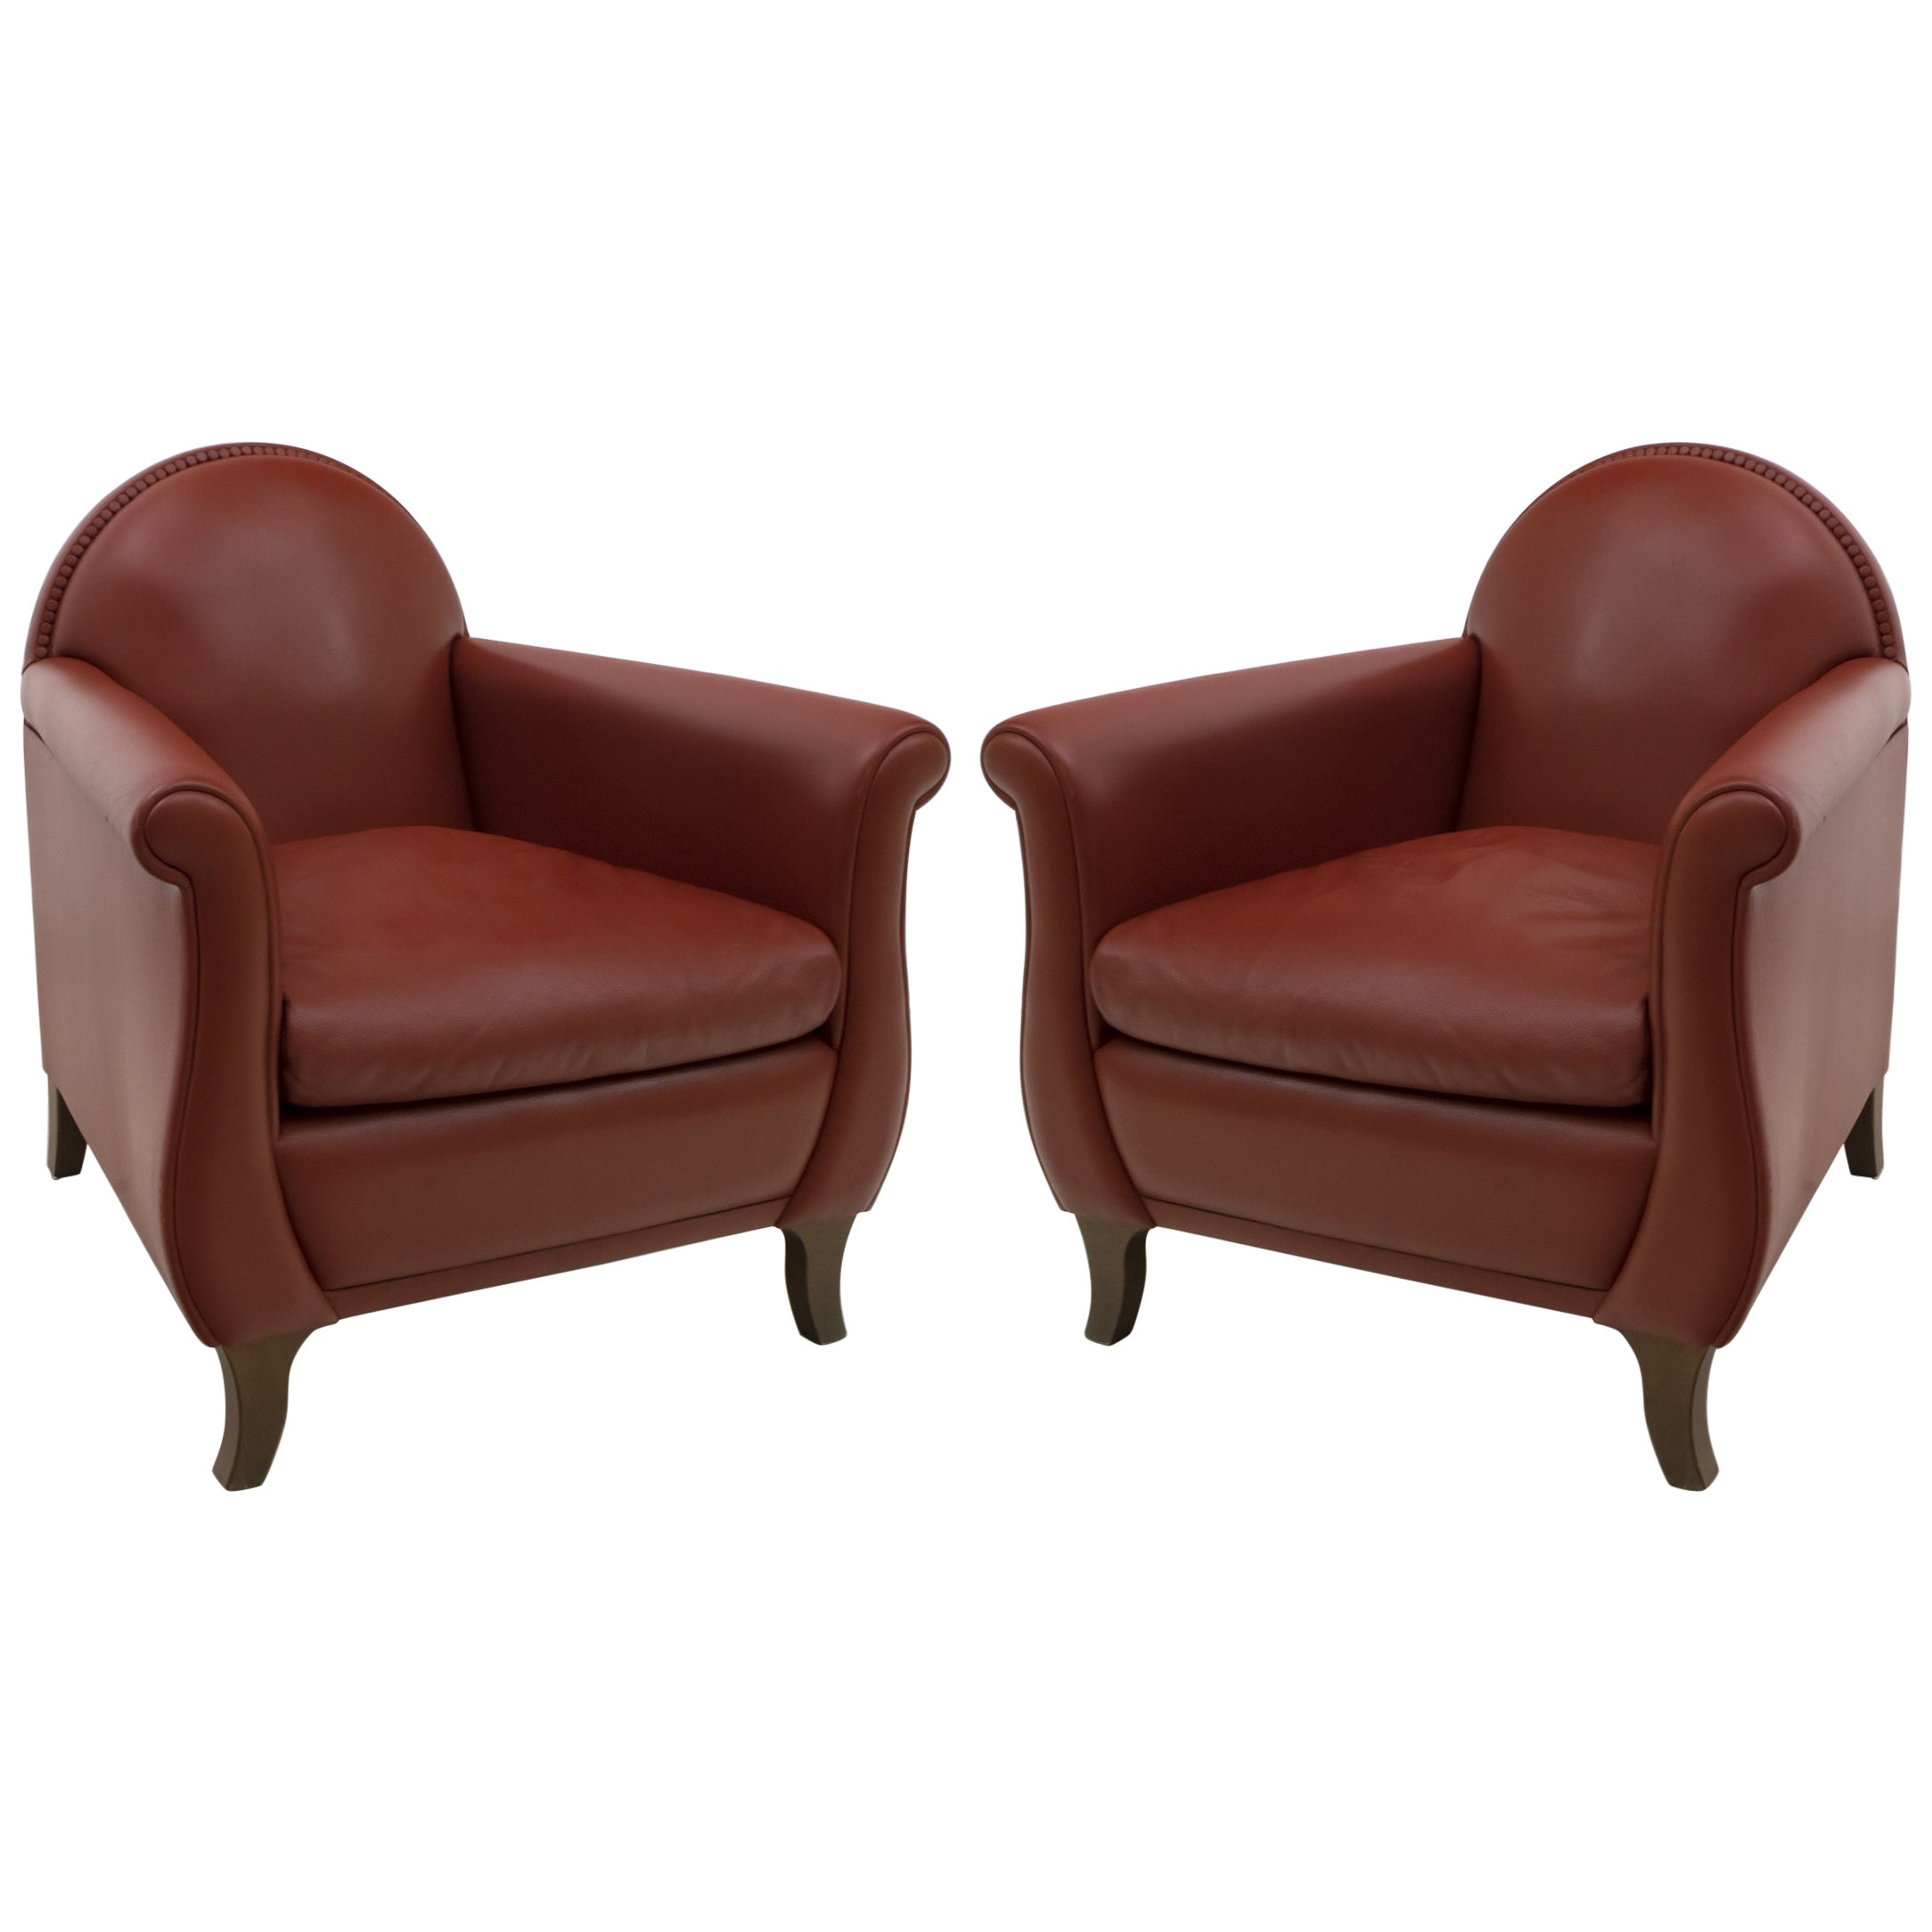 "Pair of Renzo Frau Italian Leather Armchairs ""Lyra"" by Poltrona Frau"